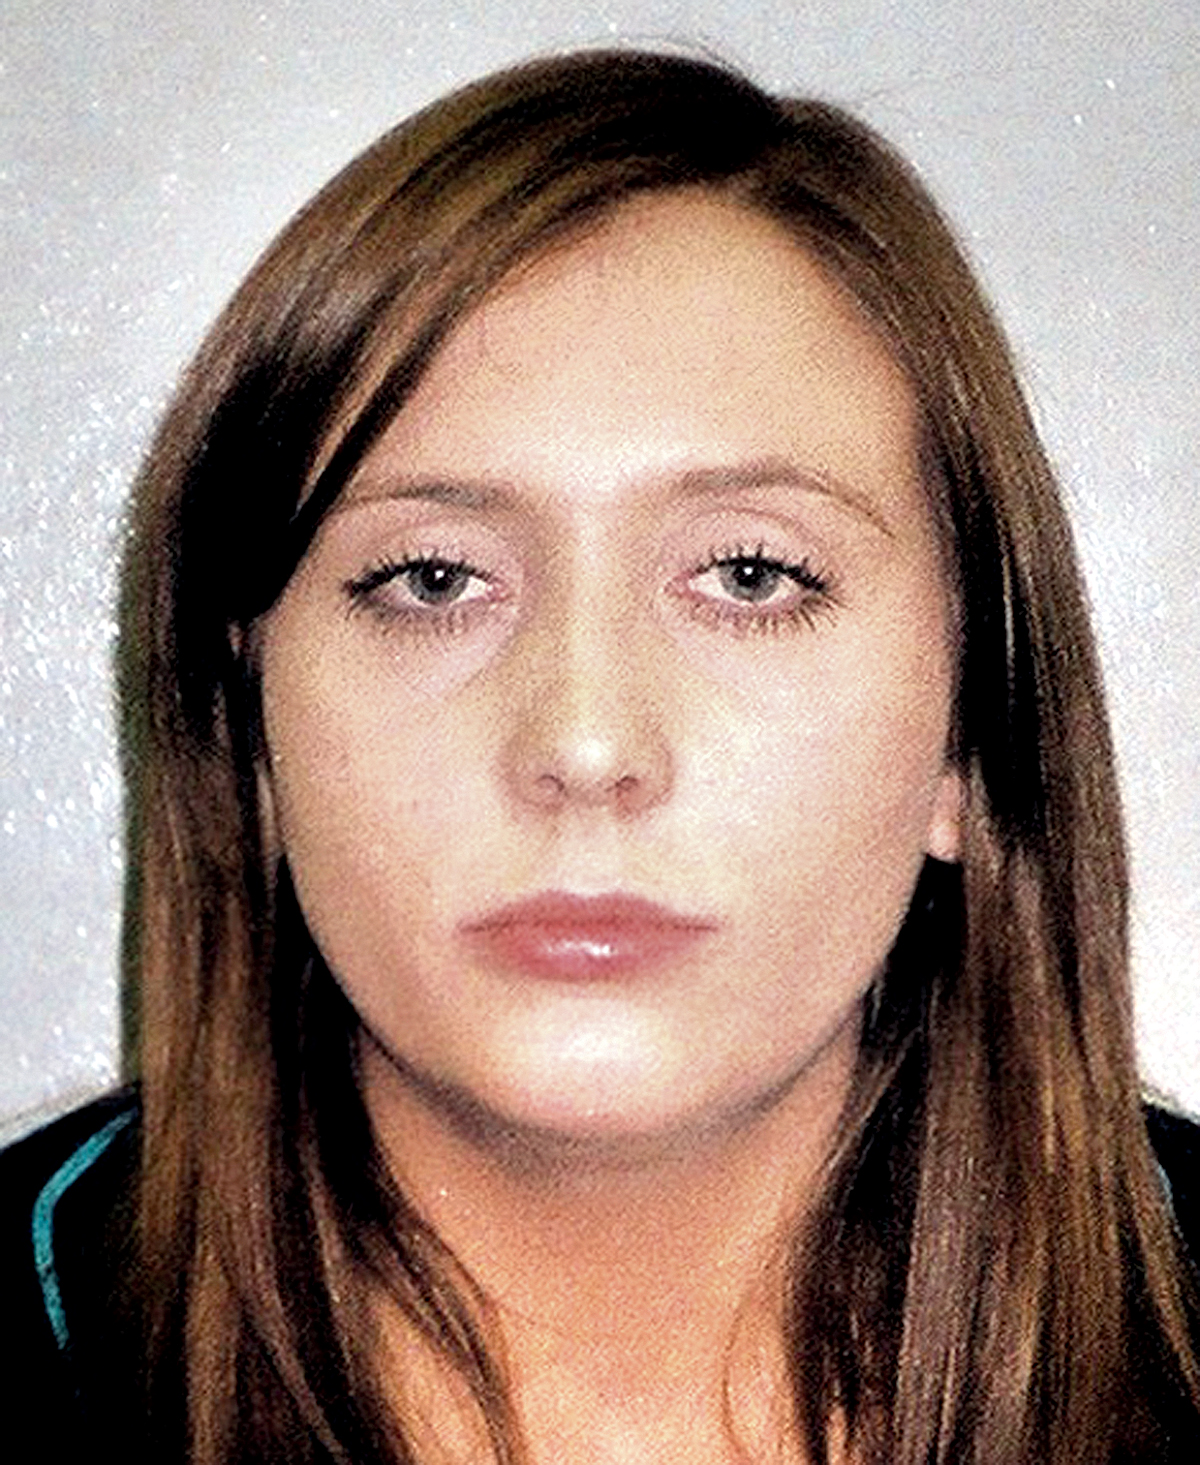 Catherine Finny, of Droitwich, stole almost £17,000